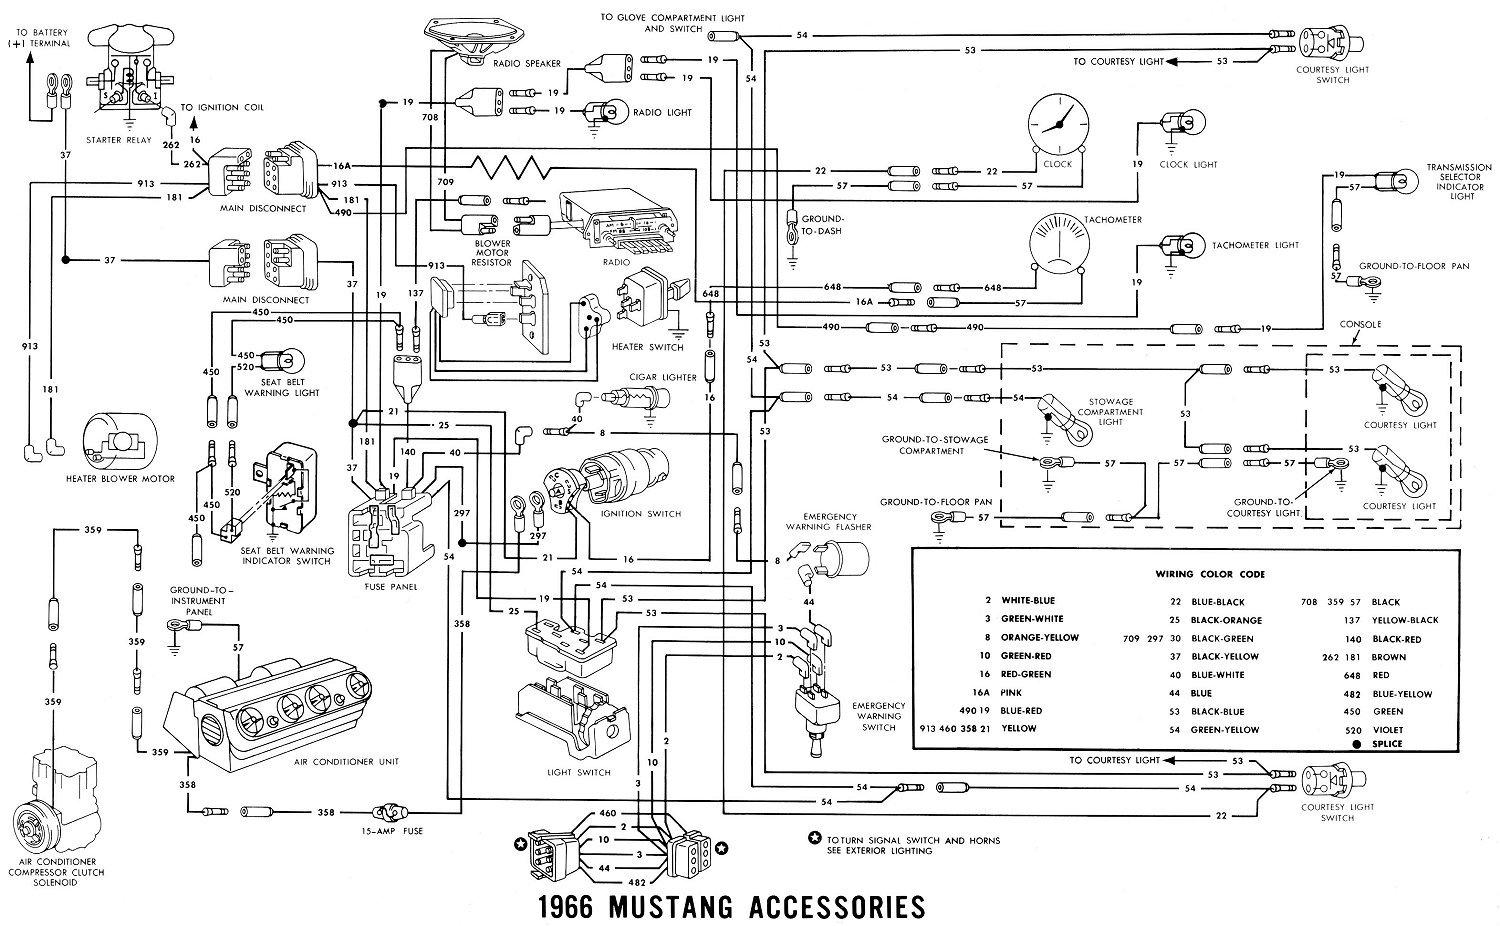 Wiring Diagram 1965 Chevelle El Camino moreover Switches Fuses besides Gm Ls3 Engine Wiring Diagram as well Wiring likewise Electrical Panel Box Dimensions. on 1971 chevy c10 wiring diagram